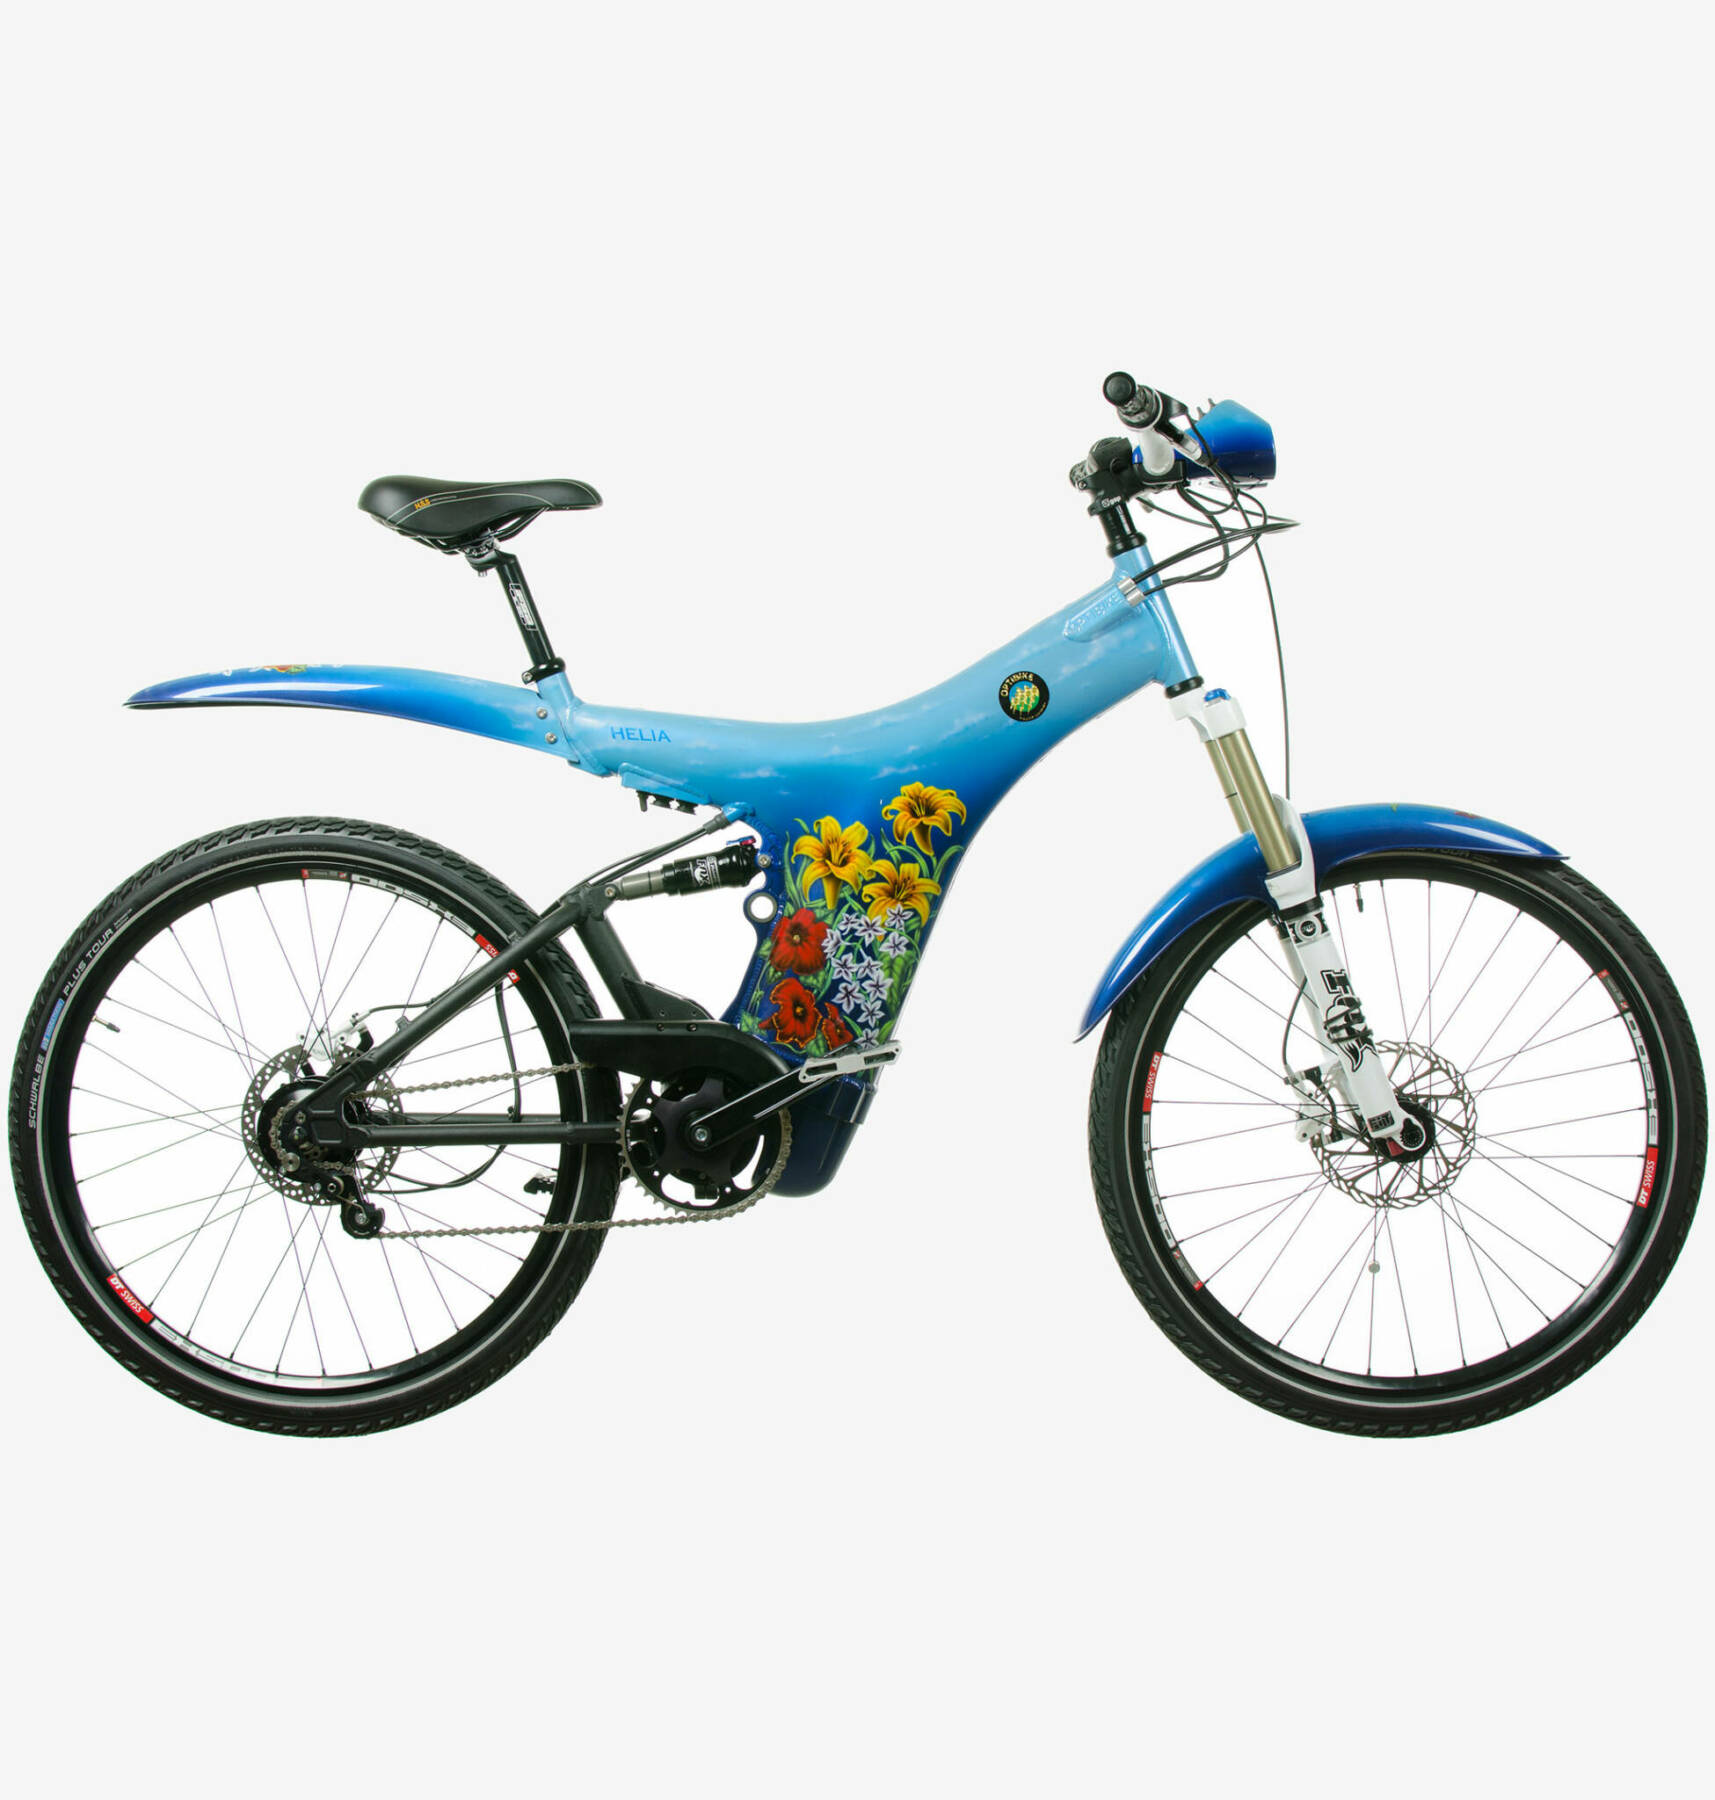 Optibike Helia blue with flowers